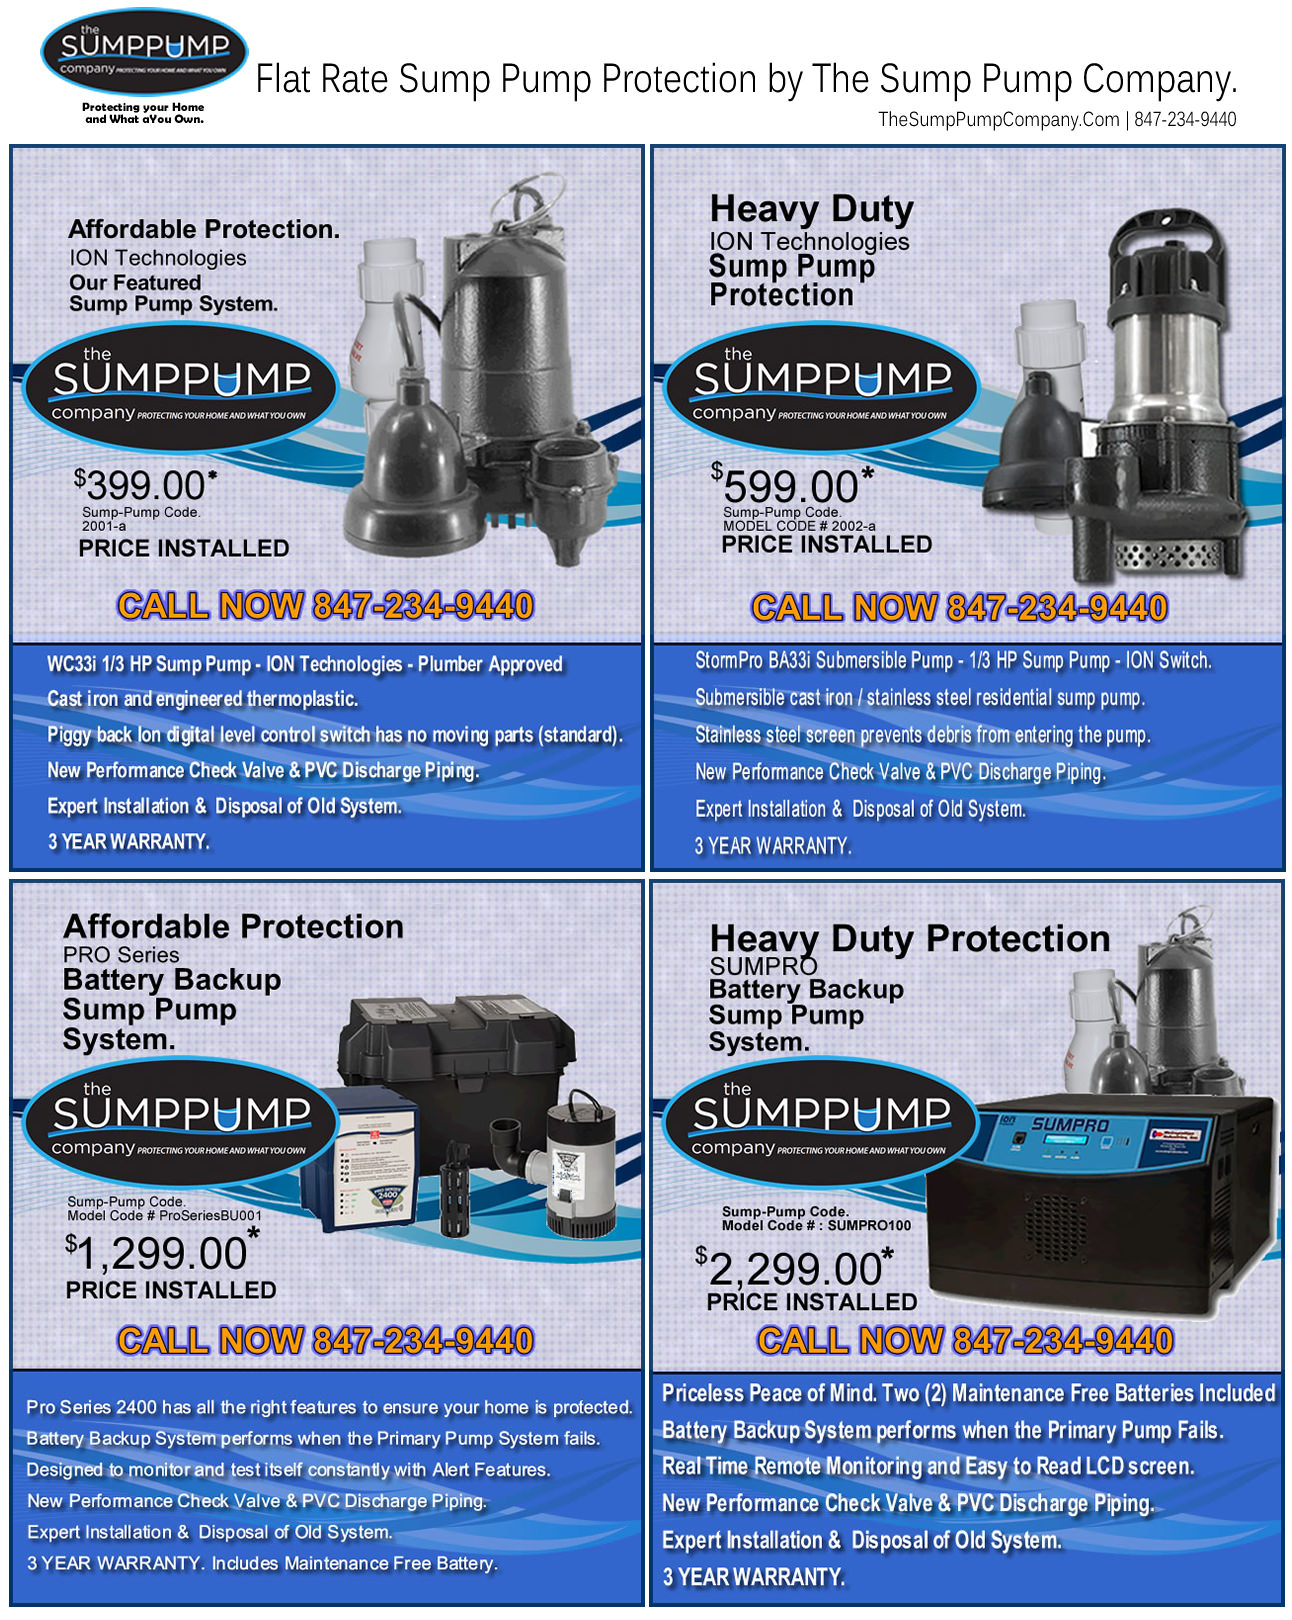 Sump Pump Sysytems from The Sump Pump Company